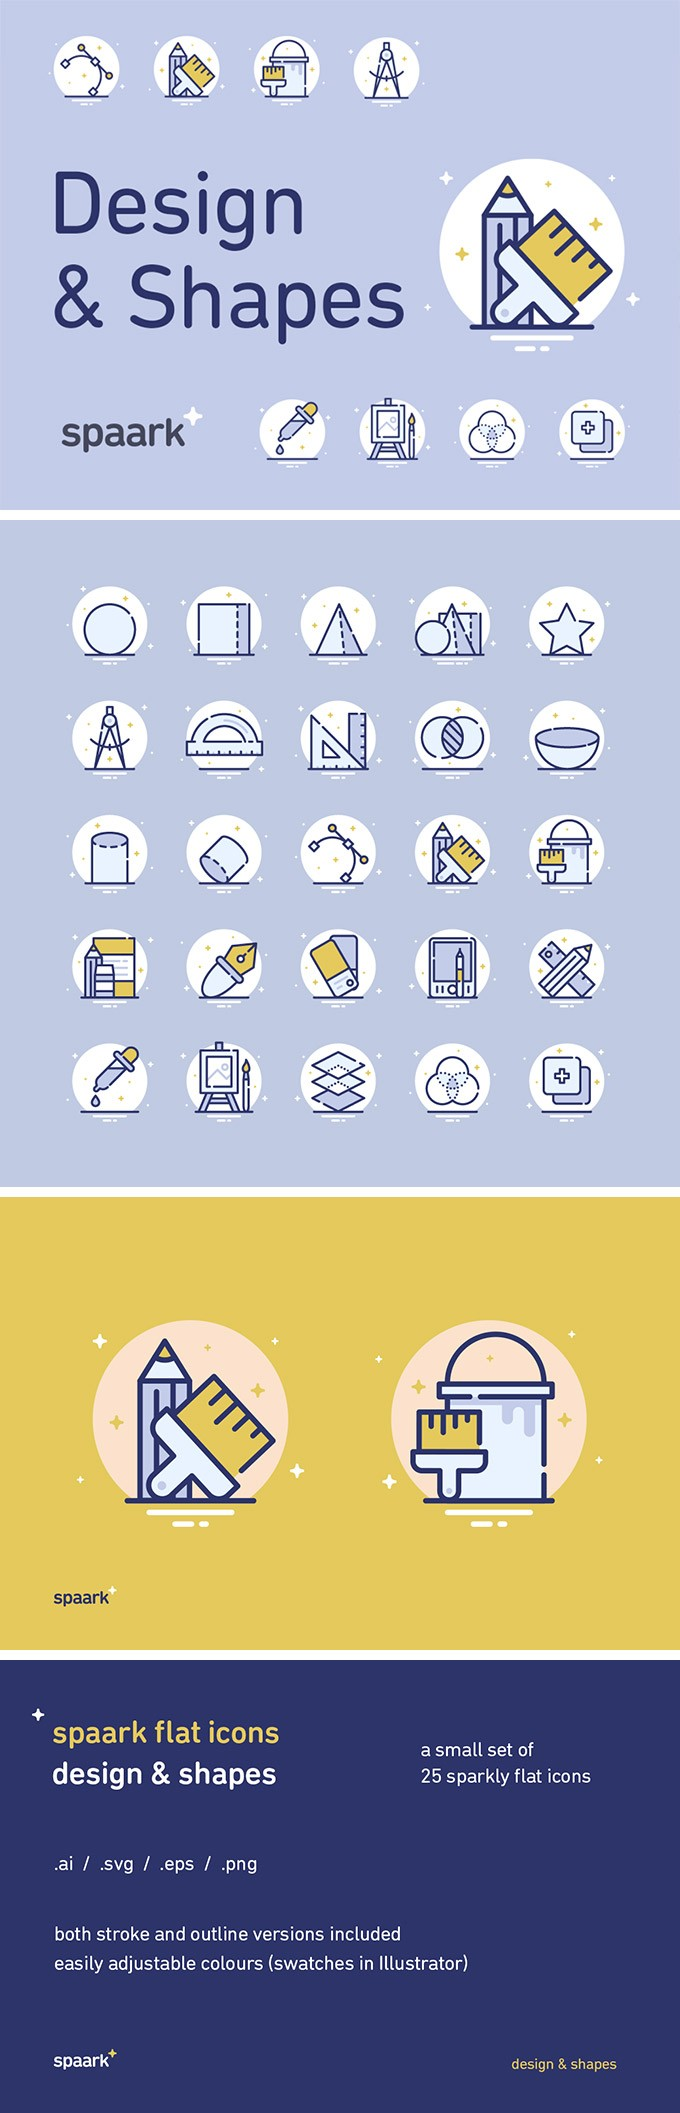 25 Design & Shapes Icons – download free